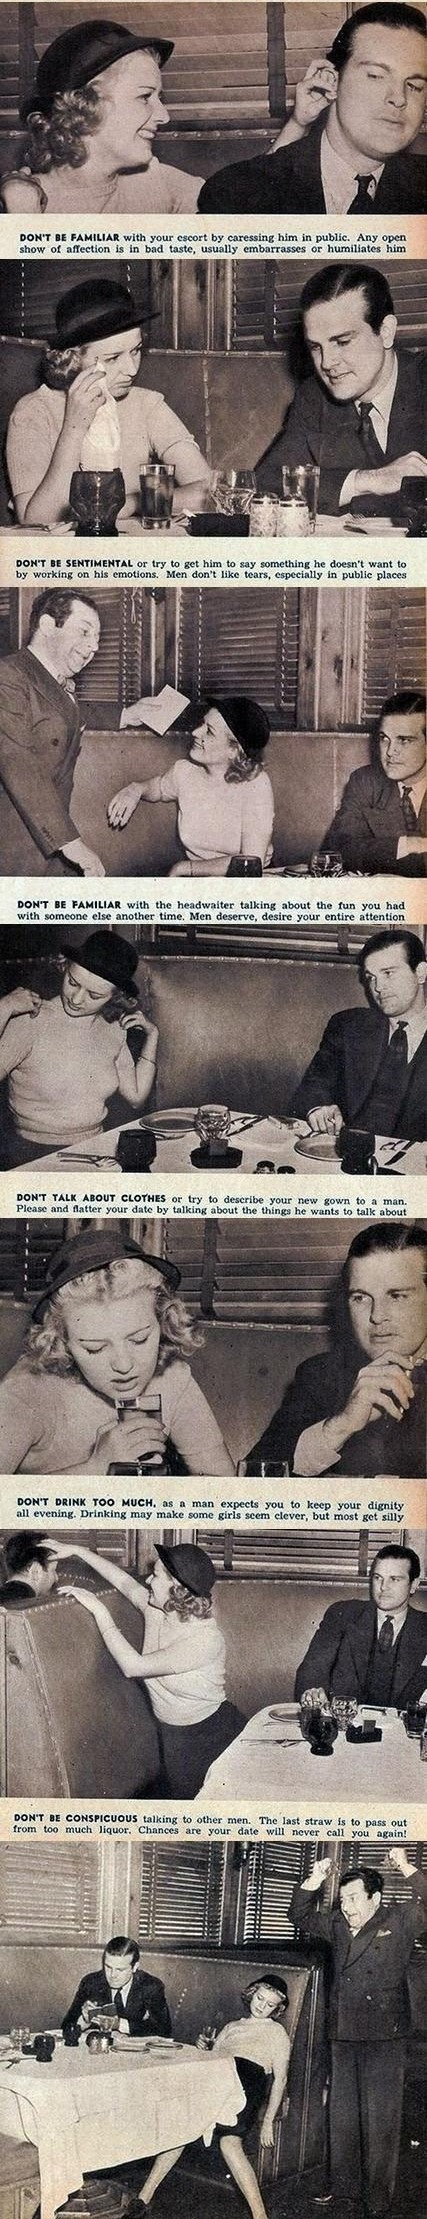 How to please a man on a date (1930): Part 2